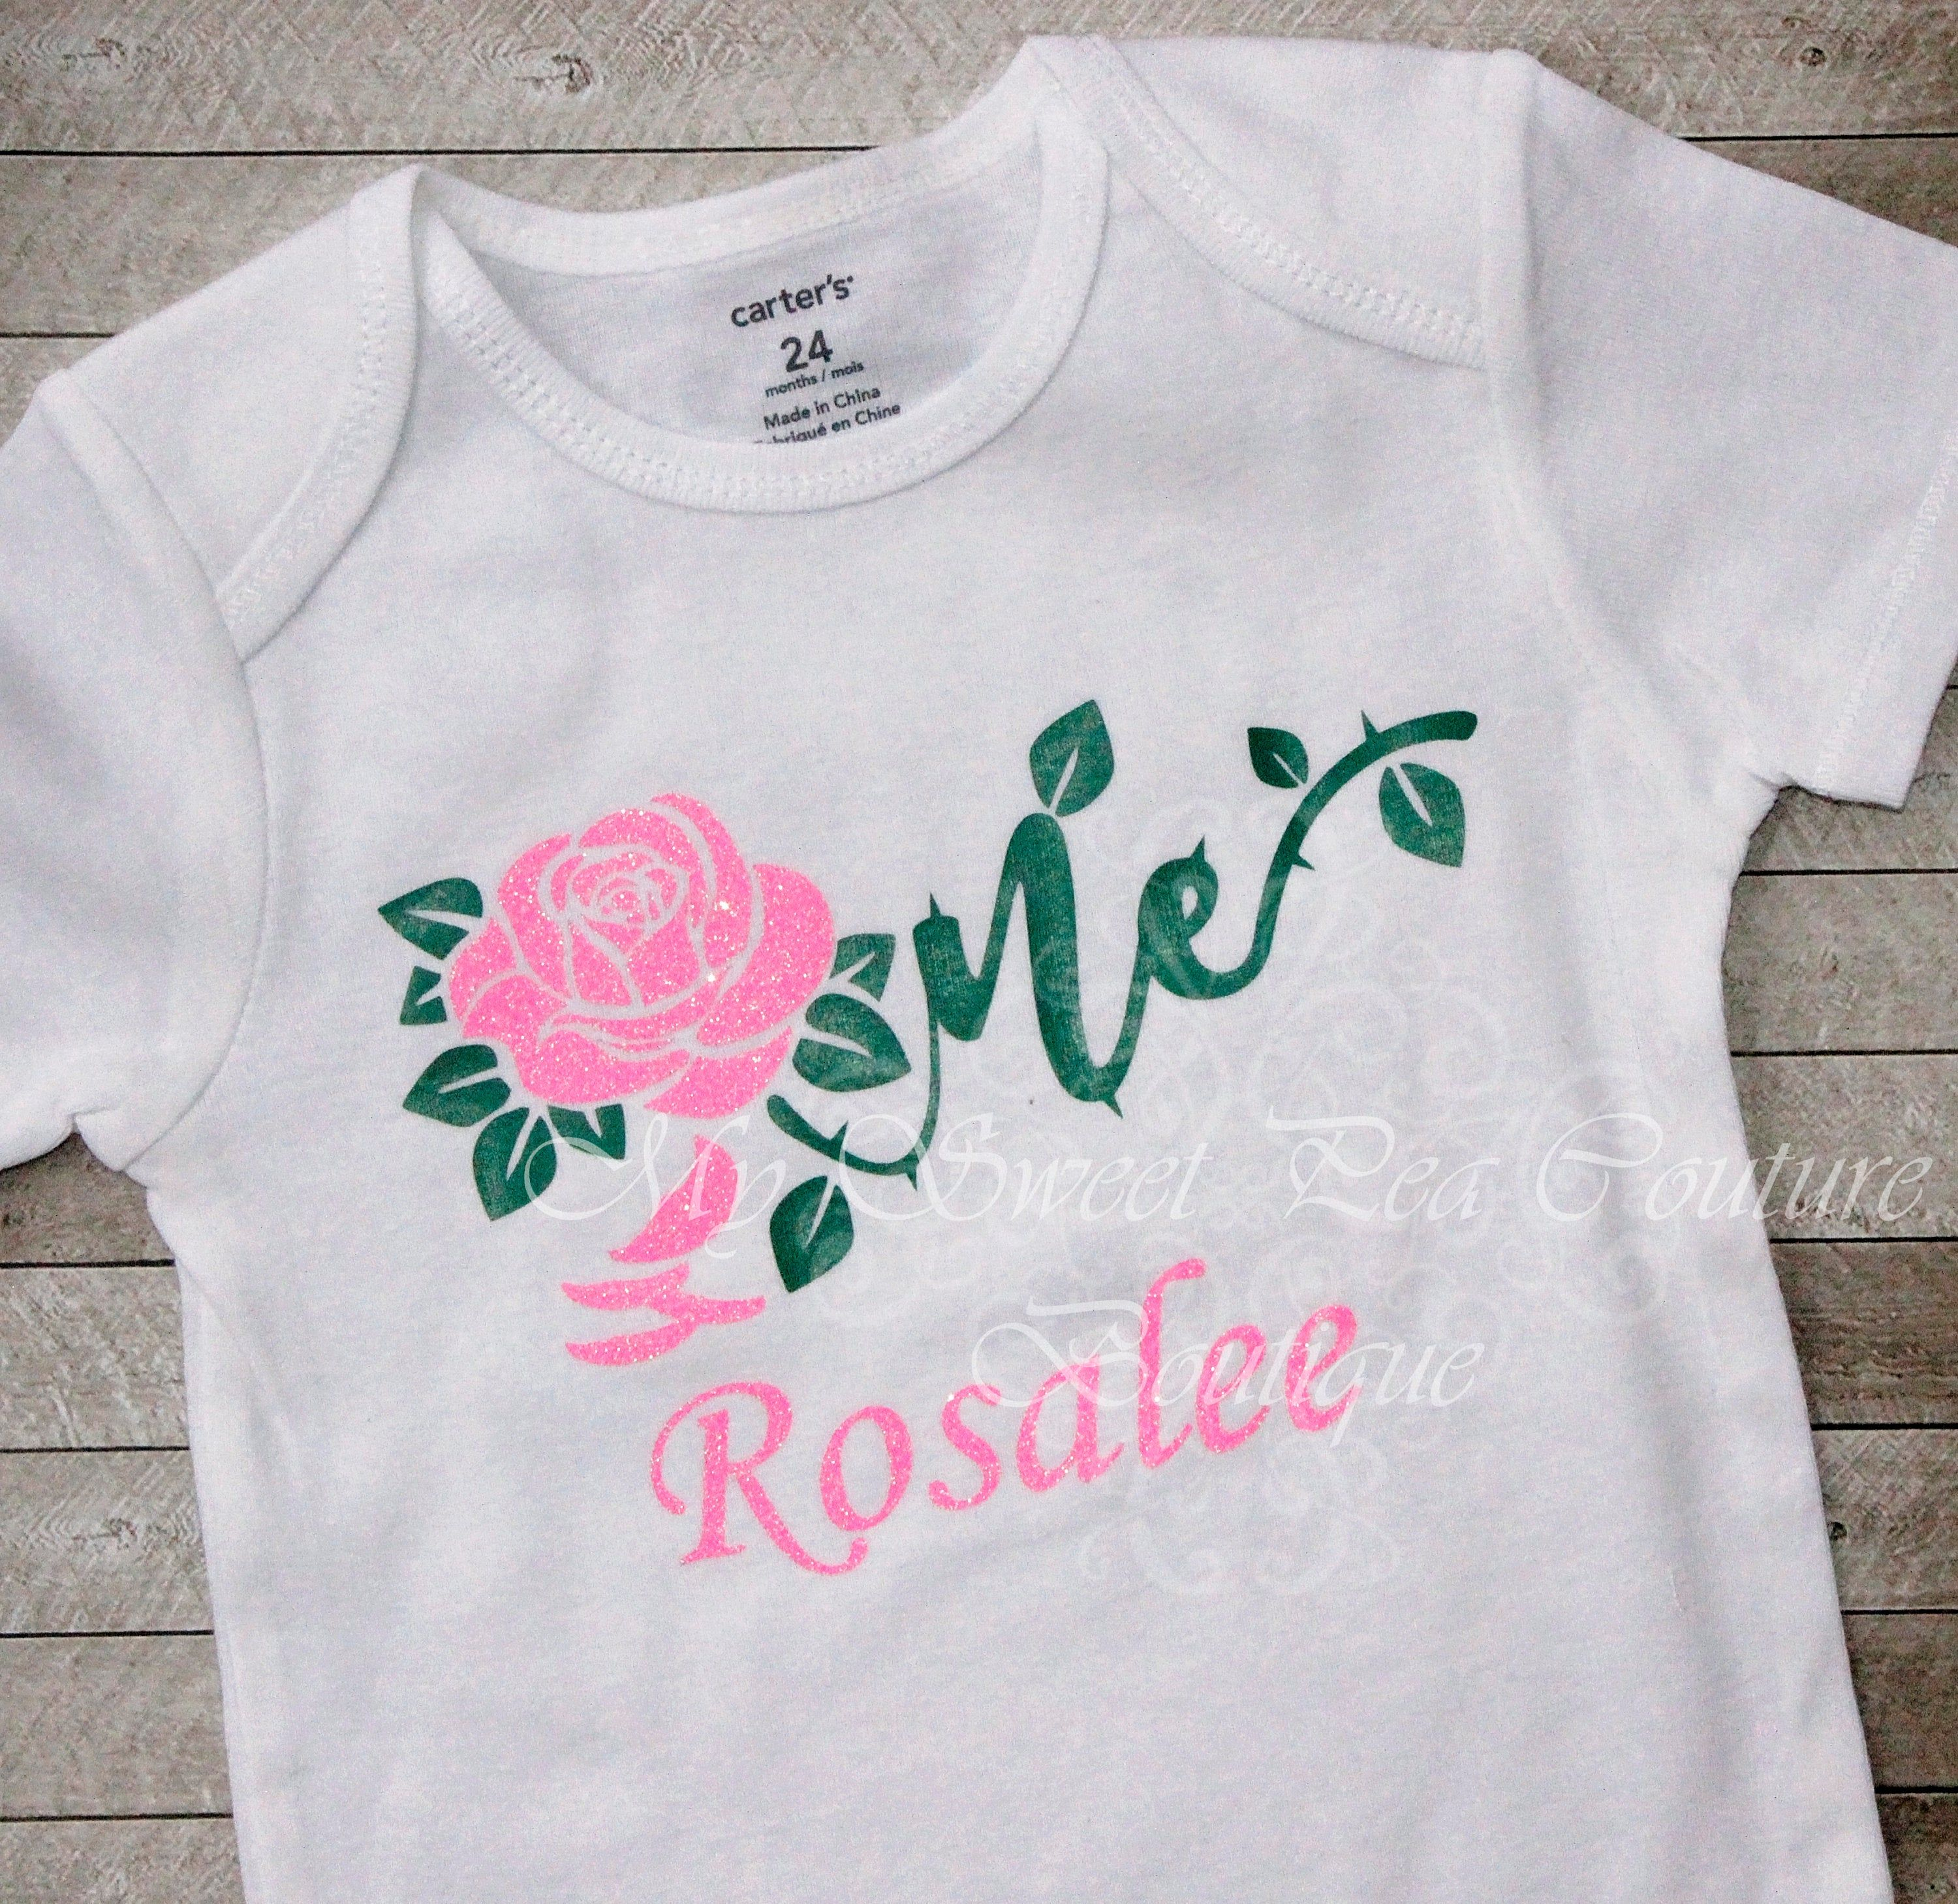 Blue Velvet Rose /& White UK 8 One of One Handmade Top The Fitted T Limited  Sustainable Fashion